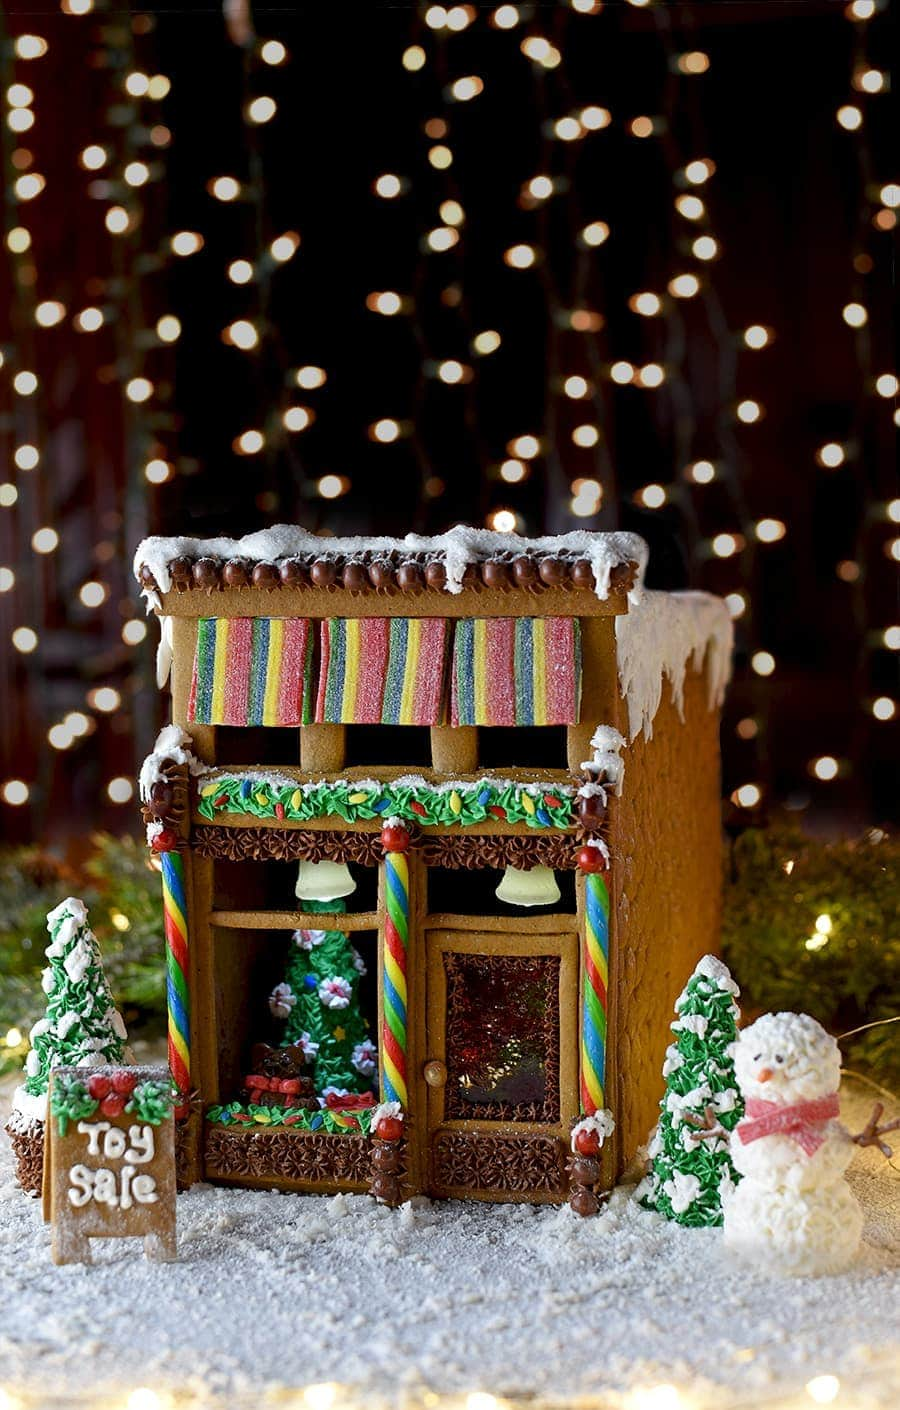 Our Victorian Storefront Gingerbread House brings the magic of a historic downtown to your house! Download our free template to make this cute toy store! It's competition worthy but its boxy design makes construction simple. #gingerbreadhouse #holidayinspiration #Christmas